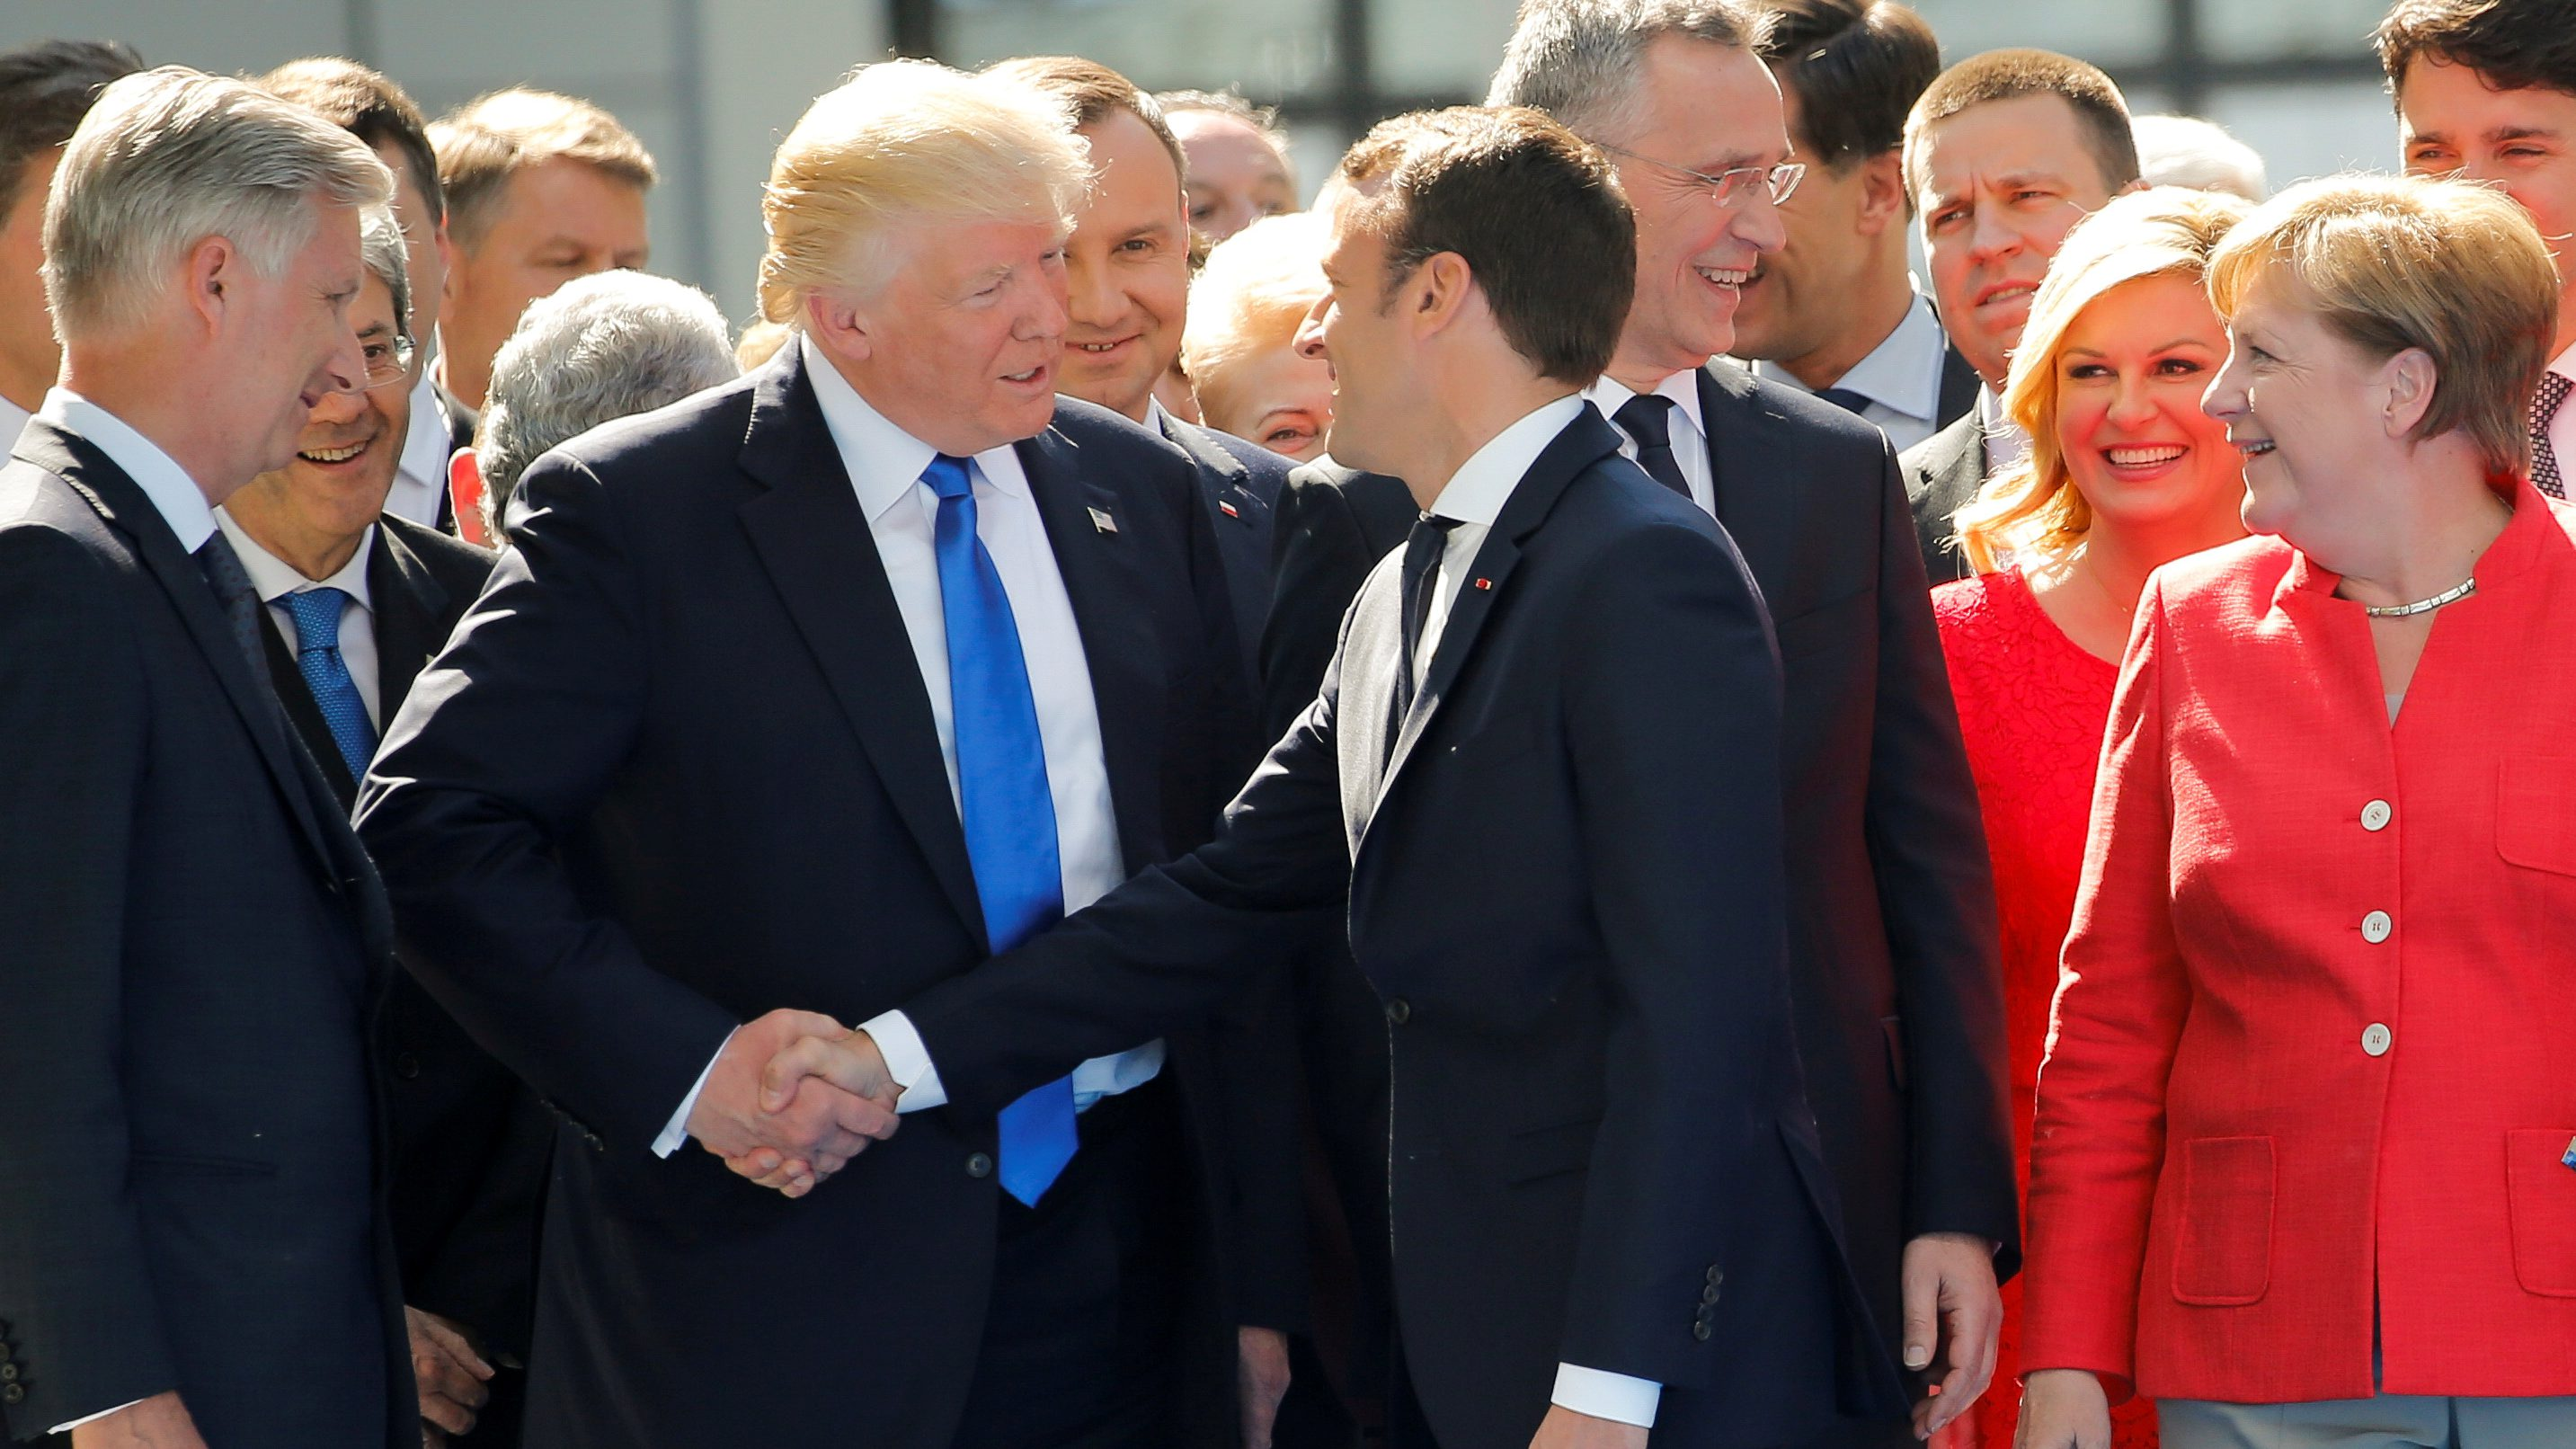 U.S. President Donald Trump jokes with French President Emmanuel Macron about their handshakes in front of NATO leaders, including German Chancellor Angela Merkel, NATO Secretary General Jens Stoltenberg (2ndR) and Belgium King Philippe (L), at the start of the NATO summit at their new headquarters in Brussels, Belgium, May 25, 2017. REUTERS/Jonathan Ernst     TPX IMAGES OF THE DAY - RTX37M45